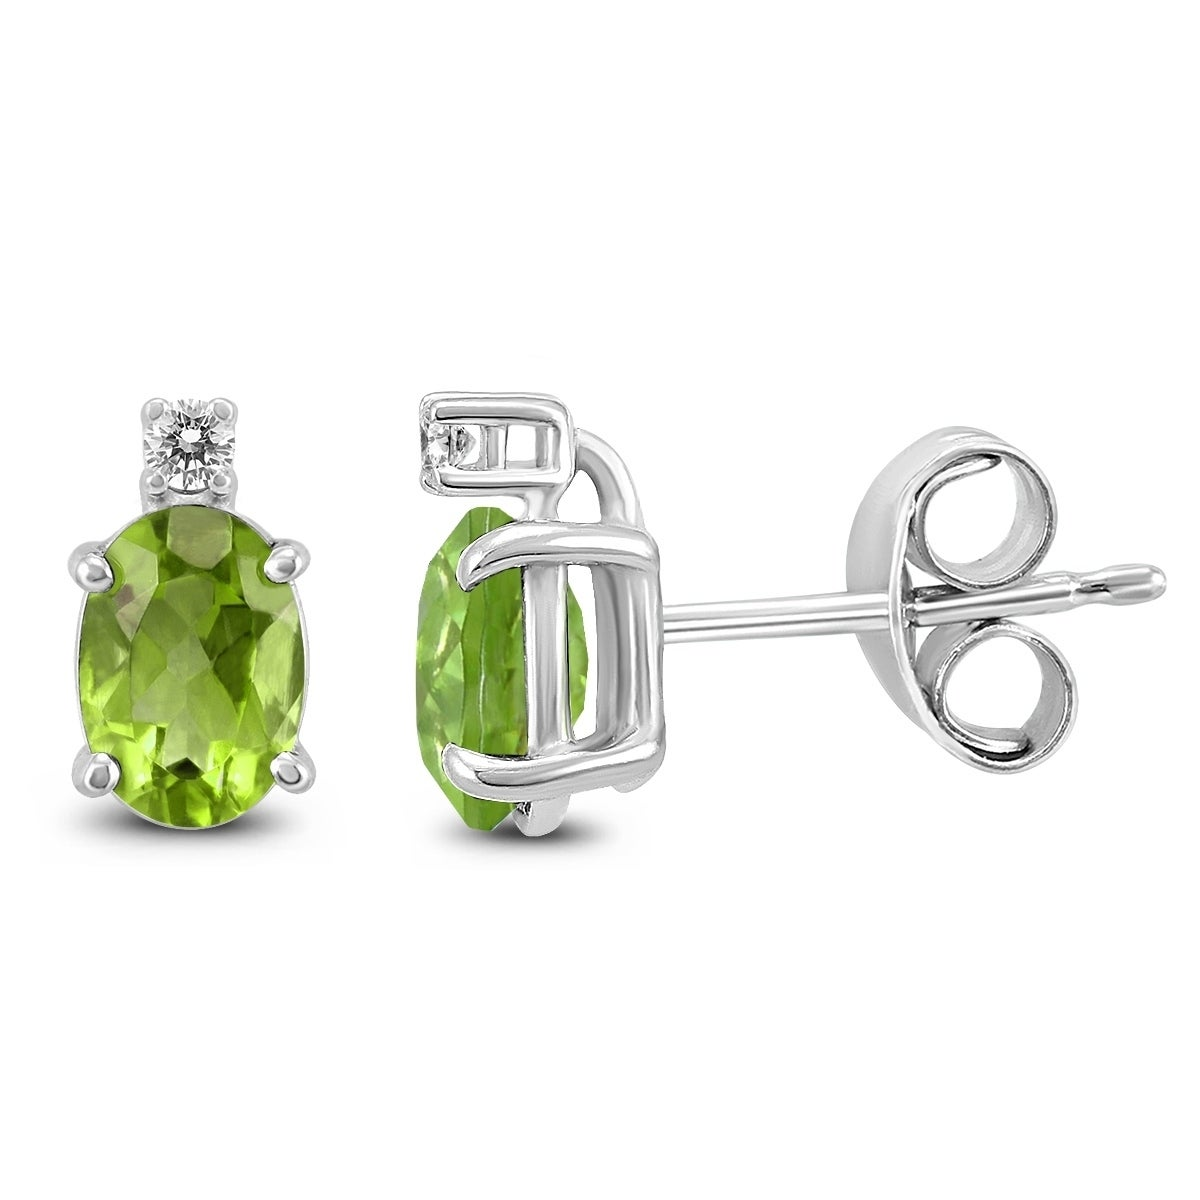 14k White Gold 7x5mm Oval Peridot And Diamond Earrings On Free Shipping Today 25770692